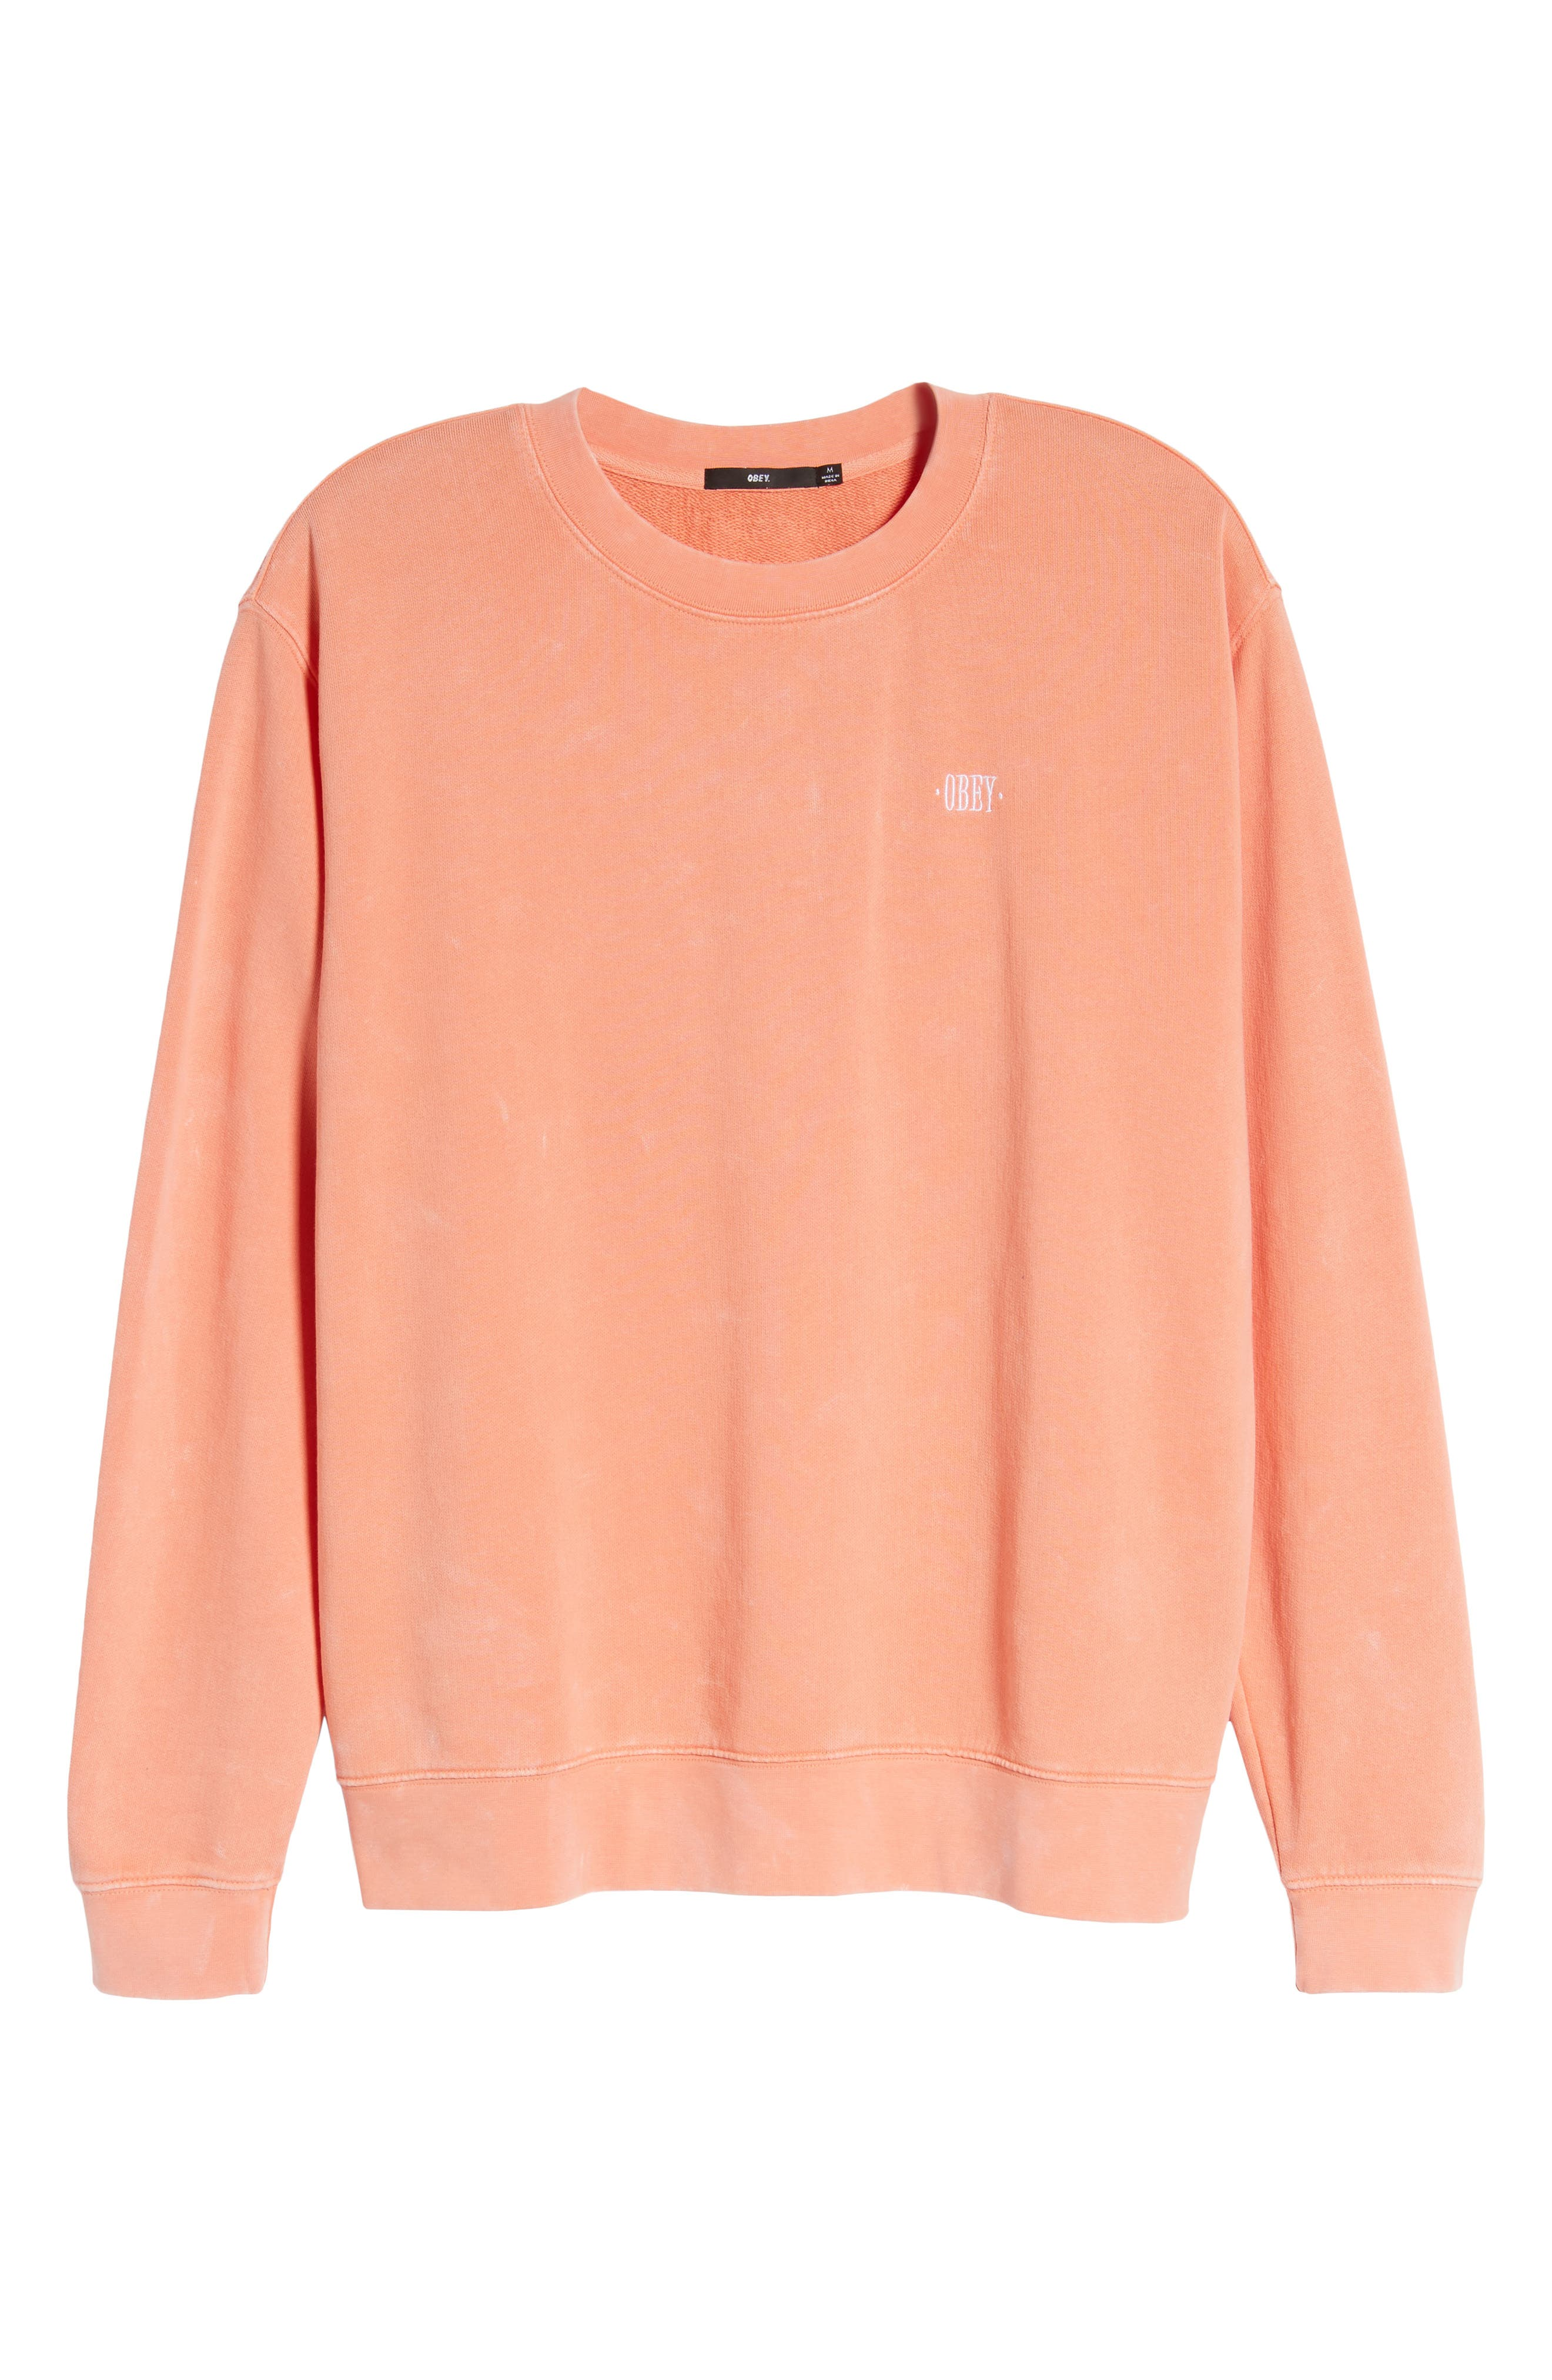 Faded Pigment-Dyed Sweatshirt,                             Alternate thumbnail 6, color,                             950